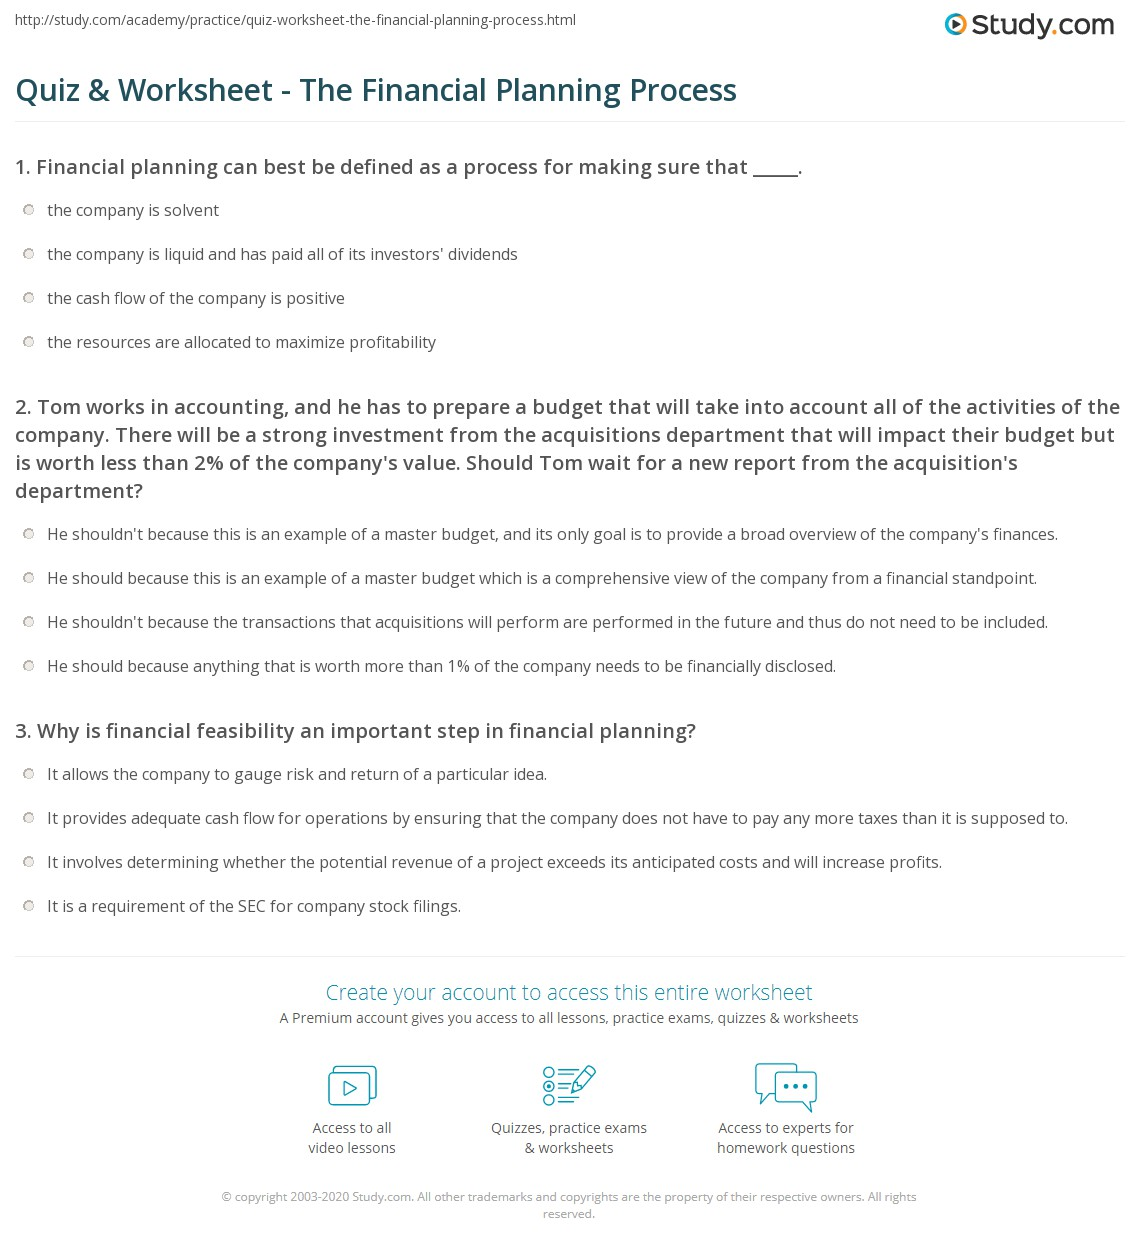 Worksheets Financial Plan Worksheet quiz worksheet the financial planning process study com 1 tom works in accounting and he has to prepare a budget that will take into account all of activities company